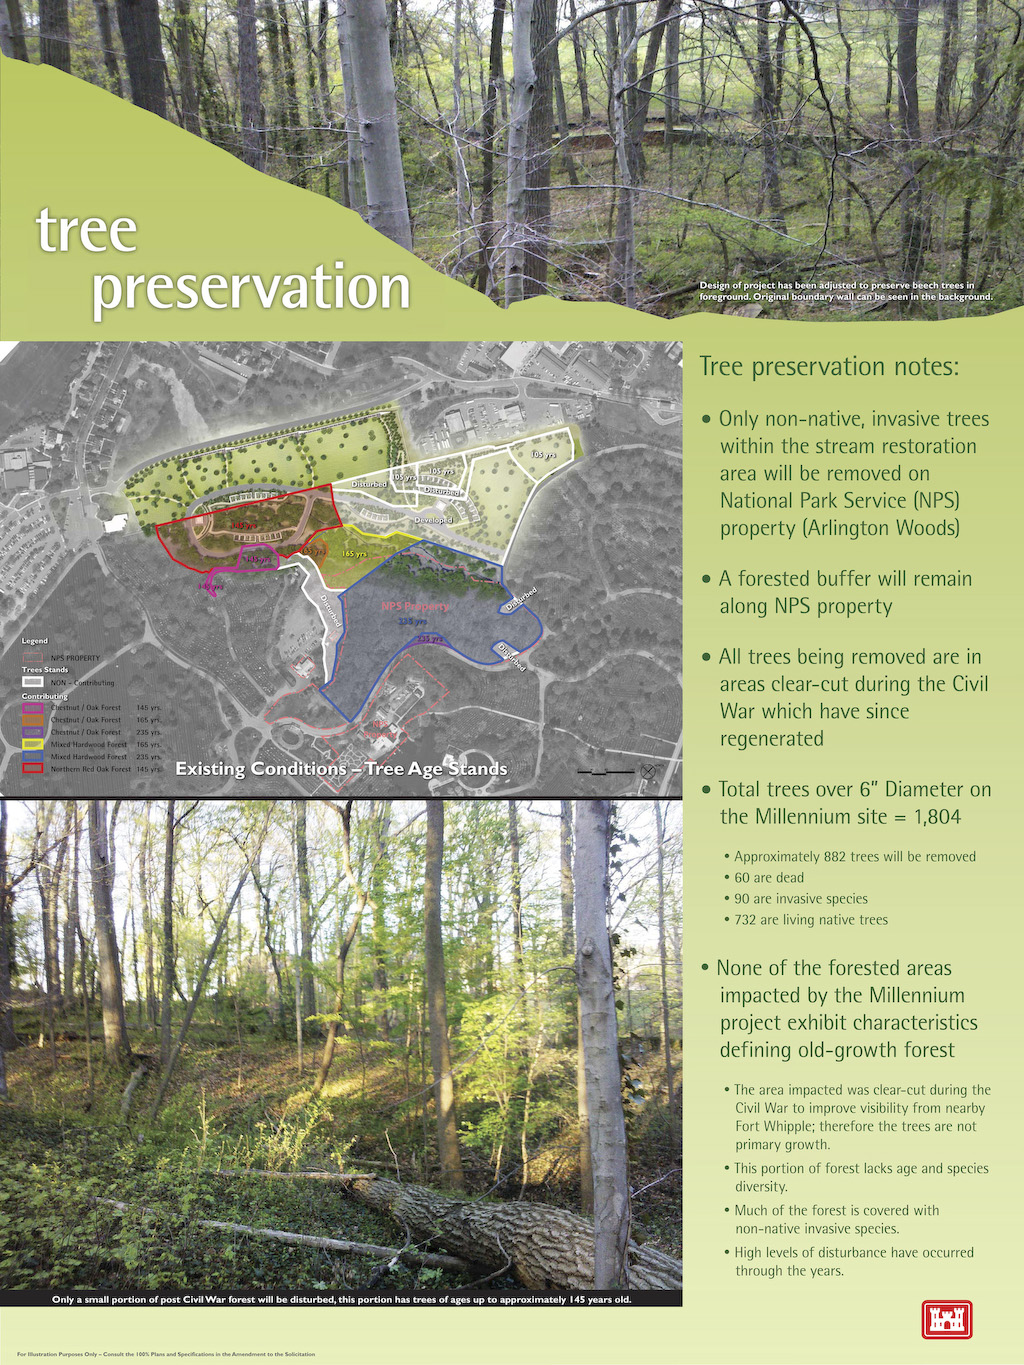 A graphic overview depicting the trees currently located within the boundaries of Arlington National Cemetery's Millennium Project. The project has 1,804 trees, with 6 inches or greater diameter, located on site; 732 living native trees have been identified for removal.